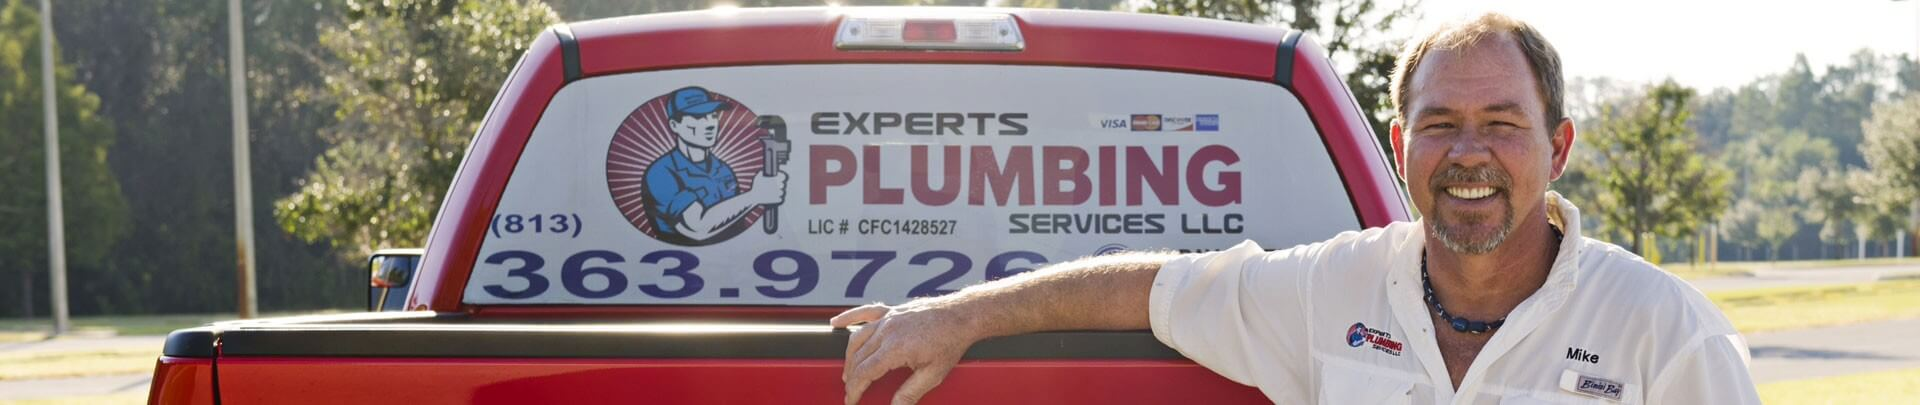 Experts Plumbing Services, LLC - Refer A Friend